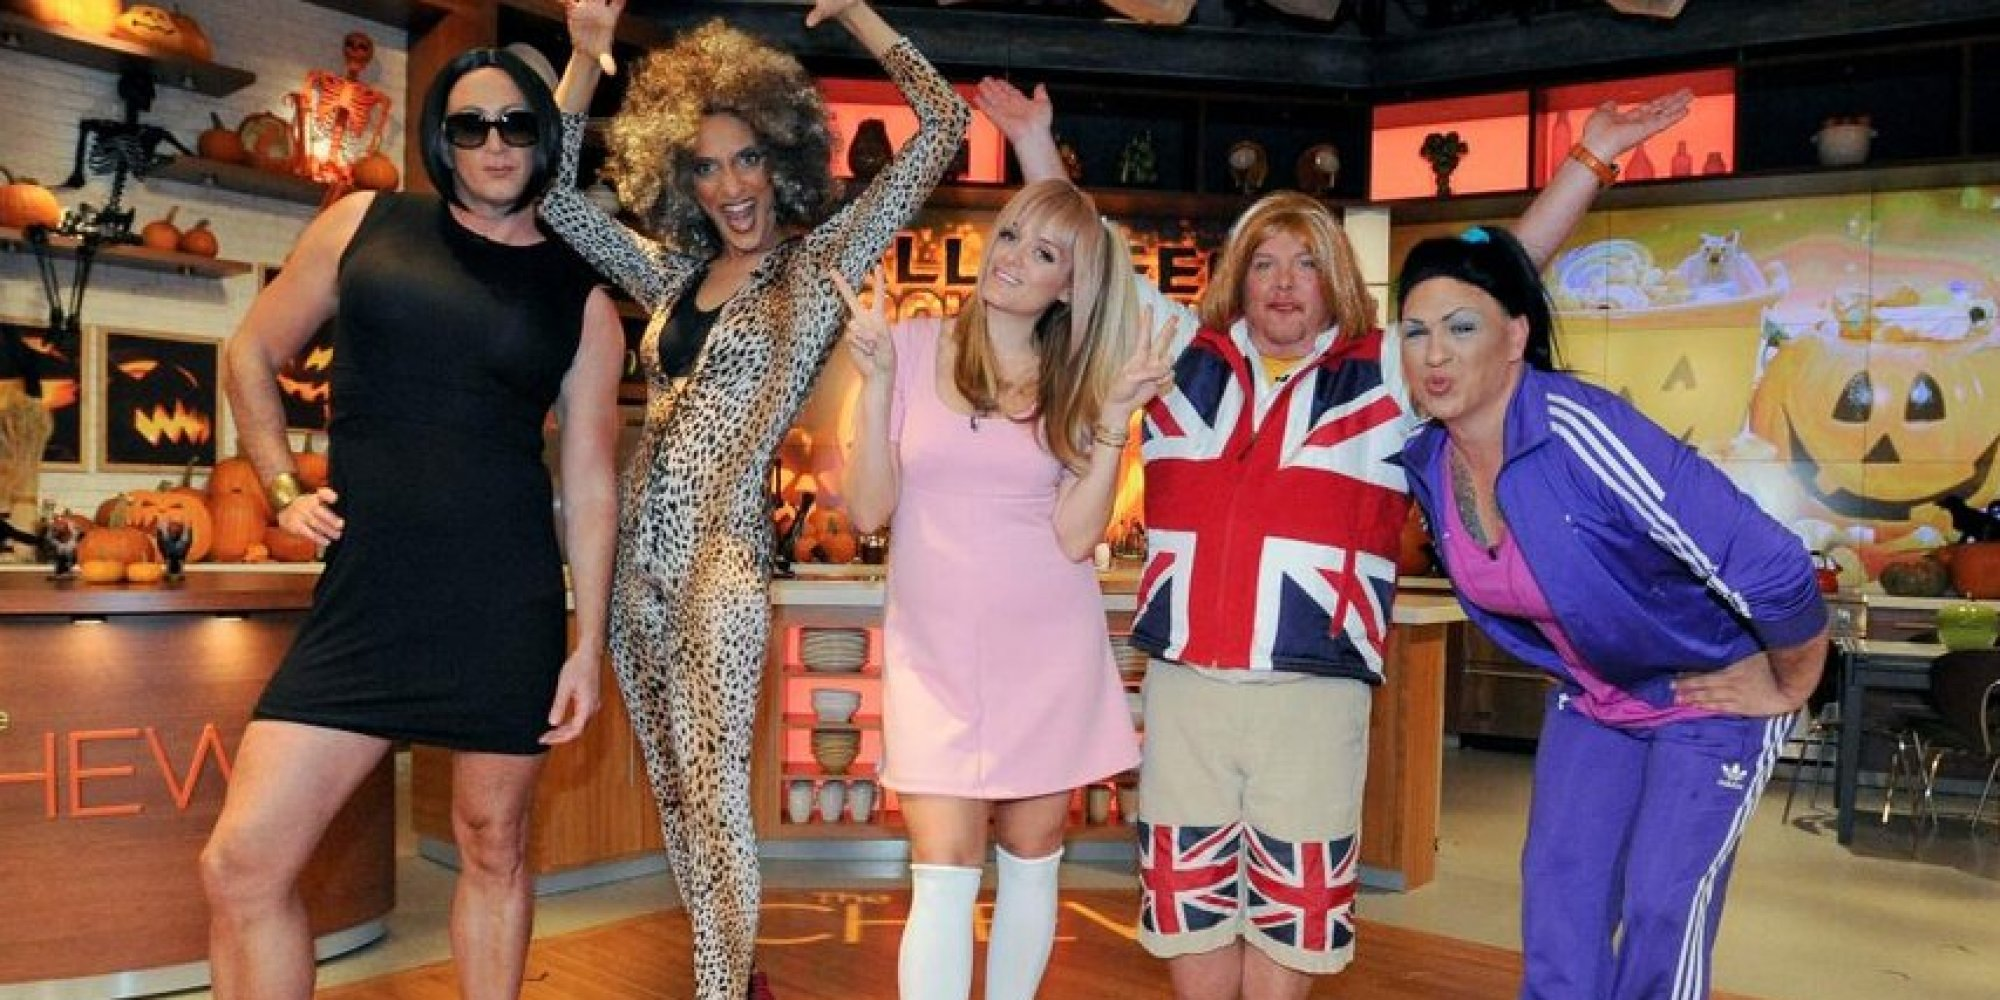 The Chew Cast the chew' cast dresses up as the spice girls for halloween (photos